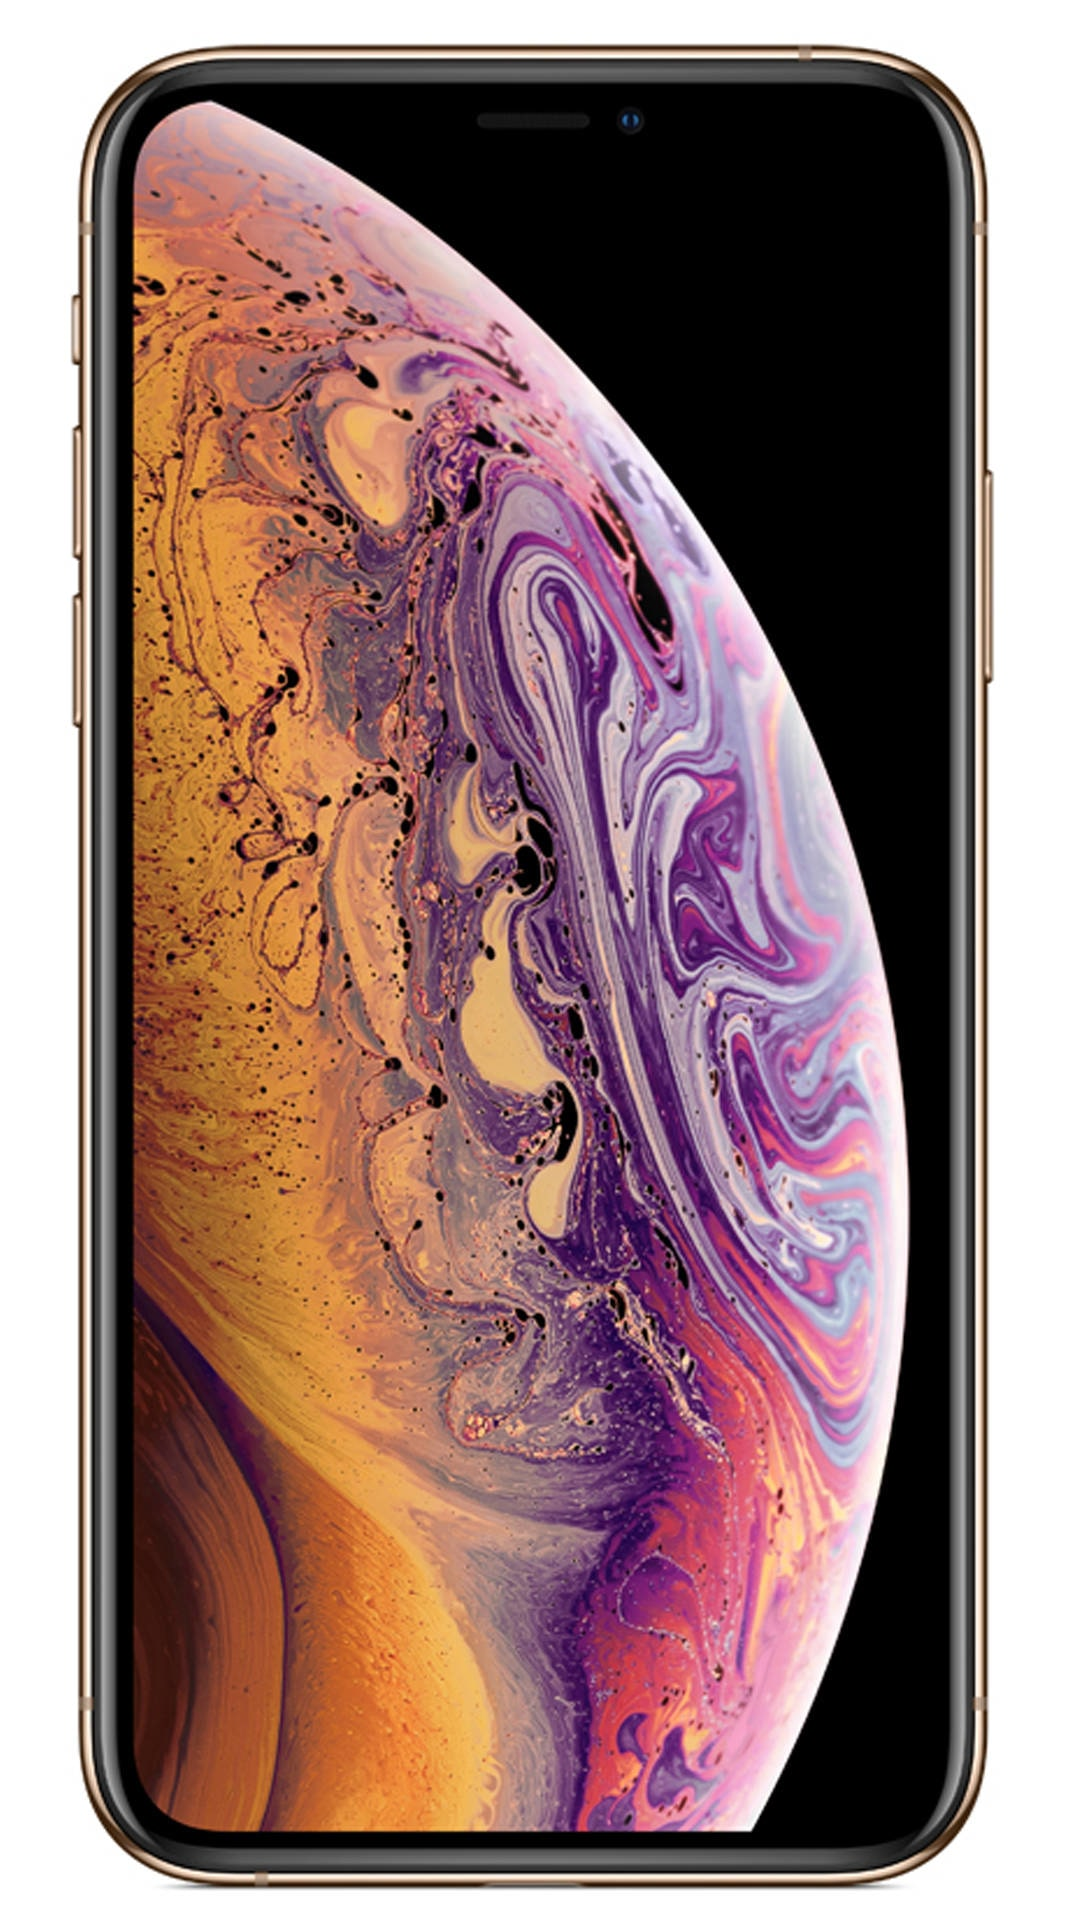 Flat 7000 Cashback - iphone XS 64 gb Gold (lowest ever)